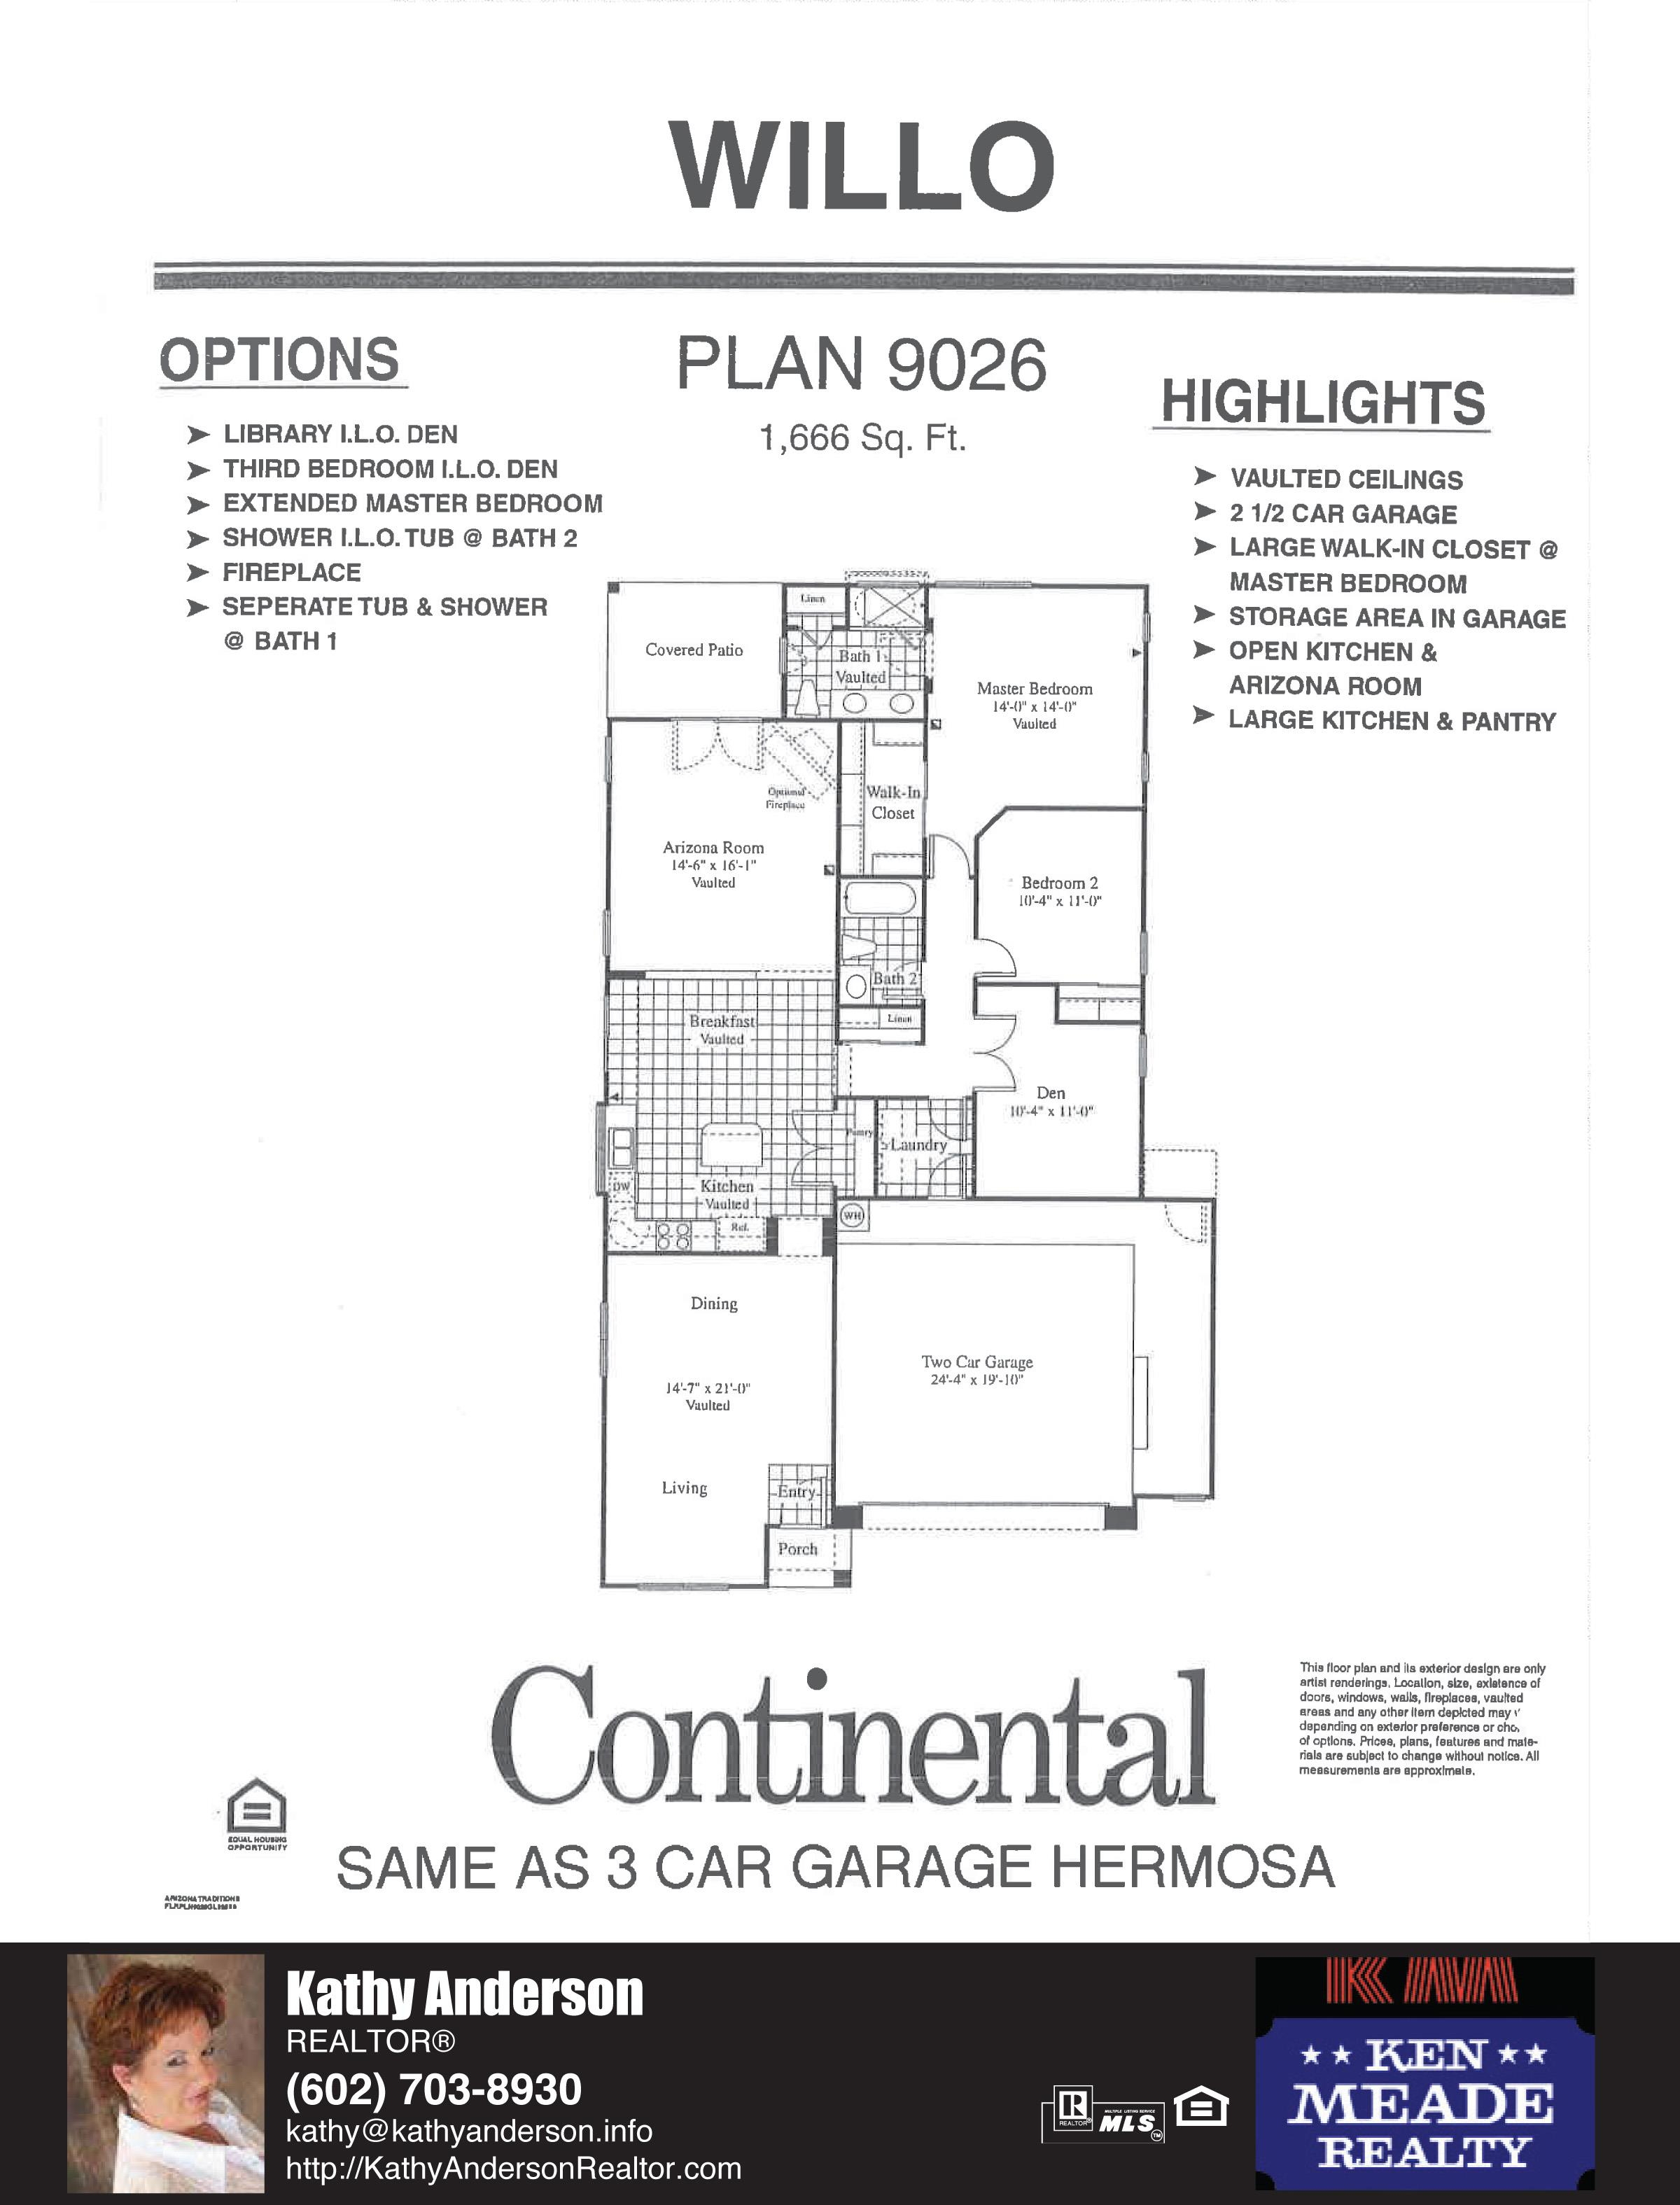 Arizona Traditions Willo Floor Plan Model Home Plans Floorplans Models in Surprise Arizona AZ Top Ken Meade Realty Realtor agent Kathy Anderson